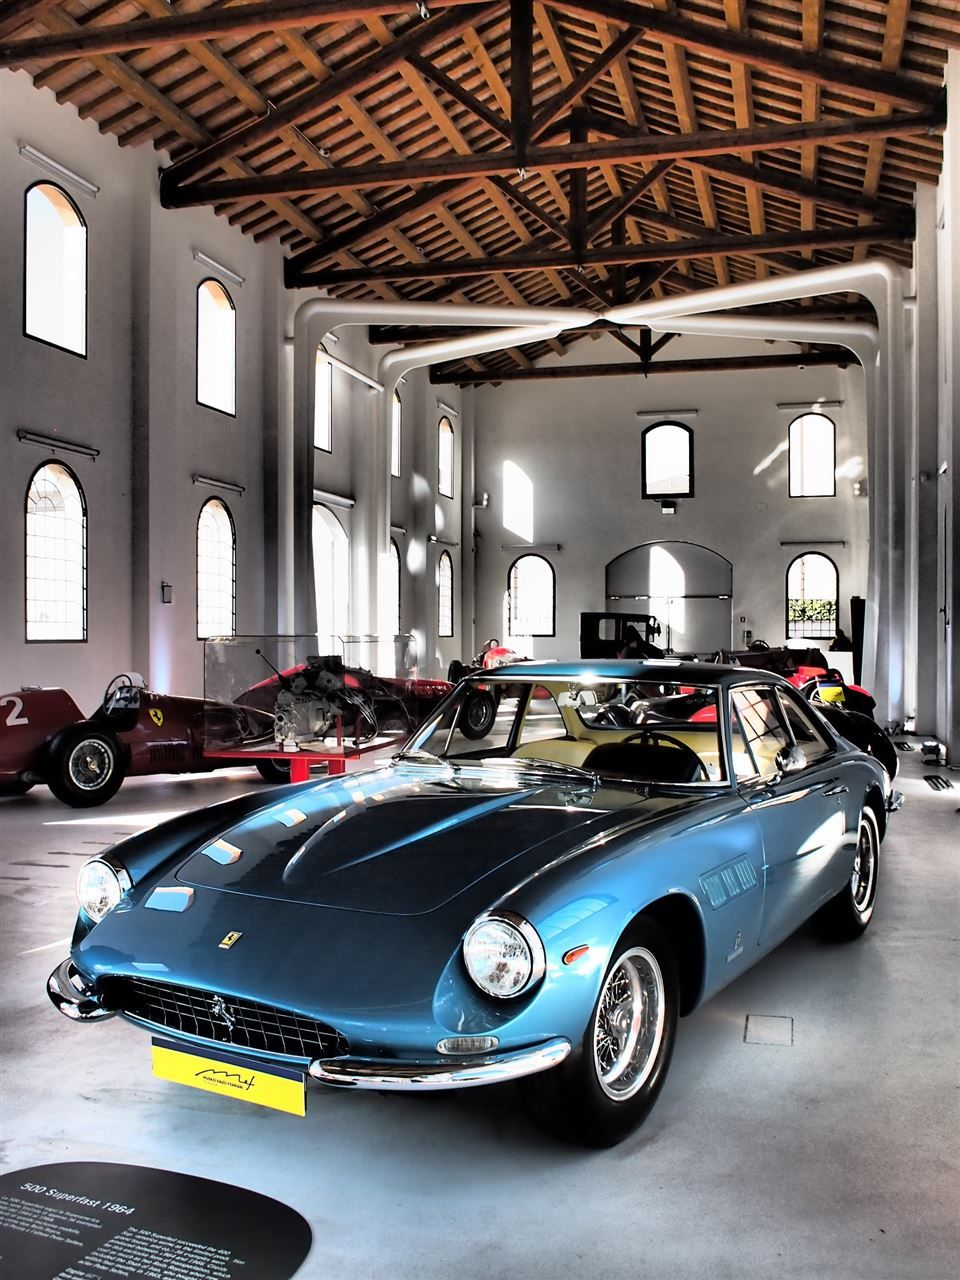 Ferrari 500 Super Fast Find This Pin And More On Vintage Car